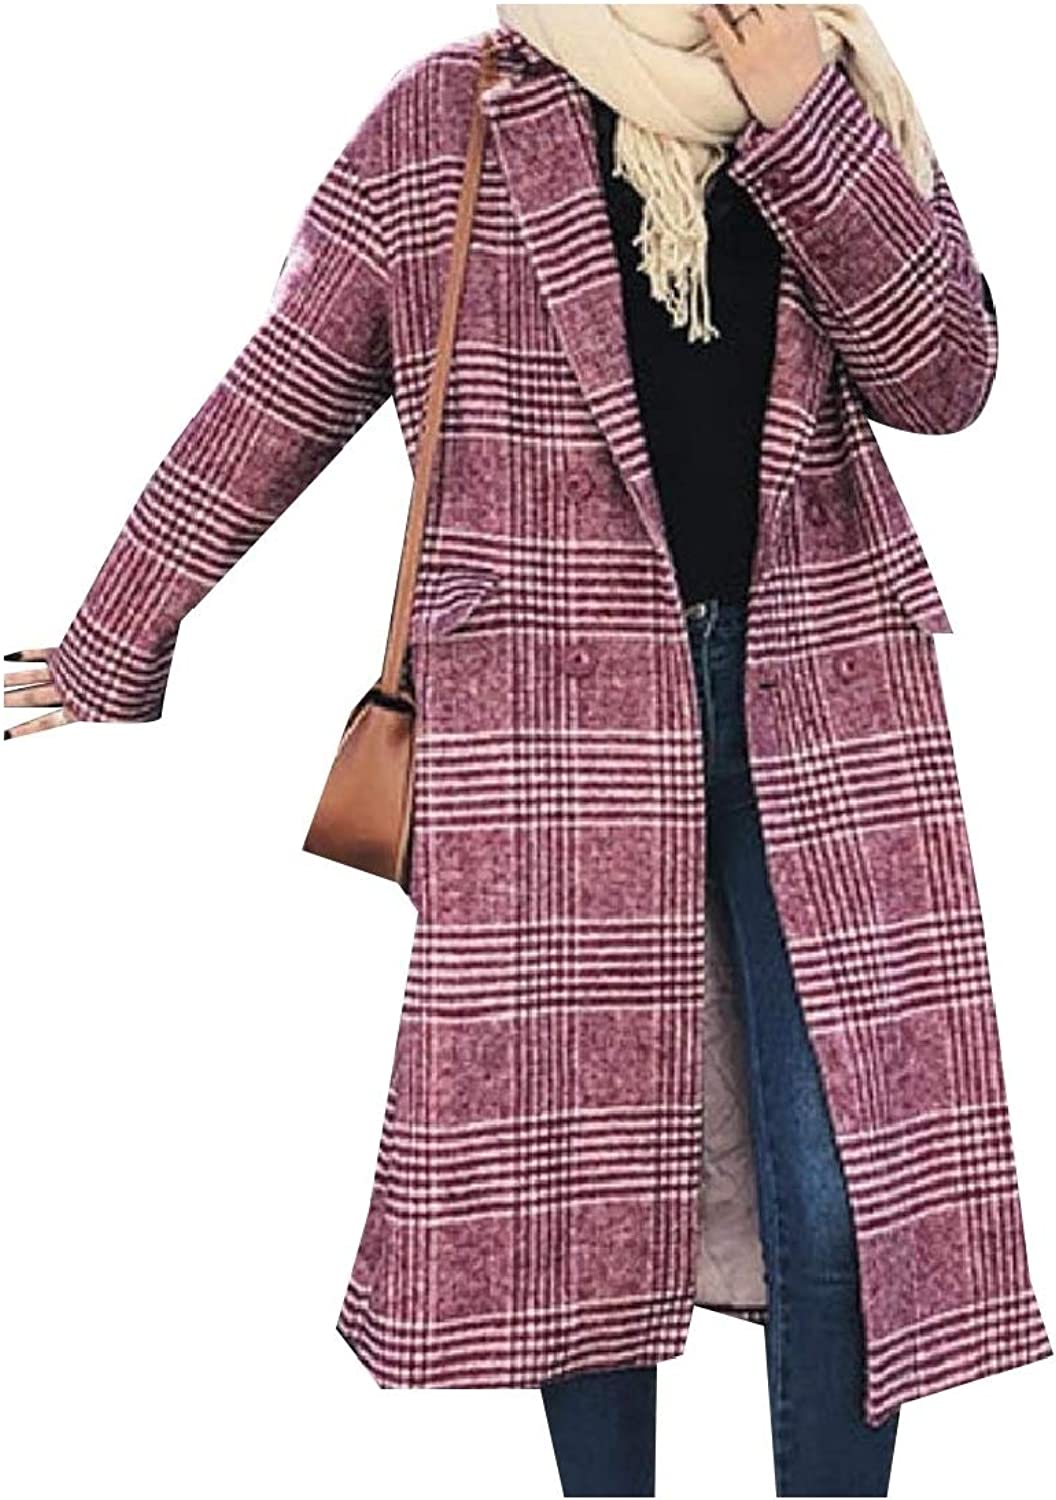 Vska Women Woolen Long Trench Coat FoldCollar Vintage Plaid Parka Jacket